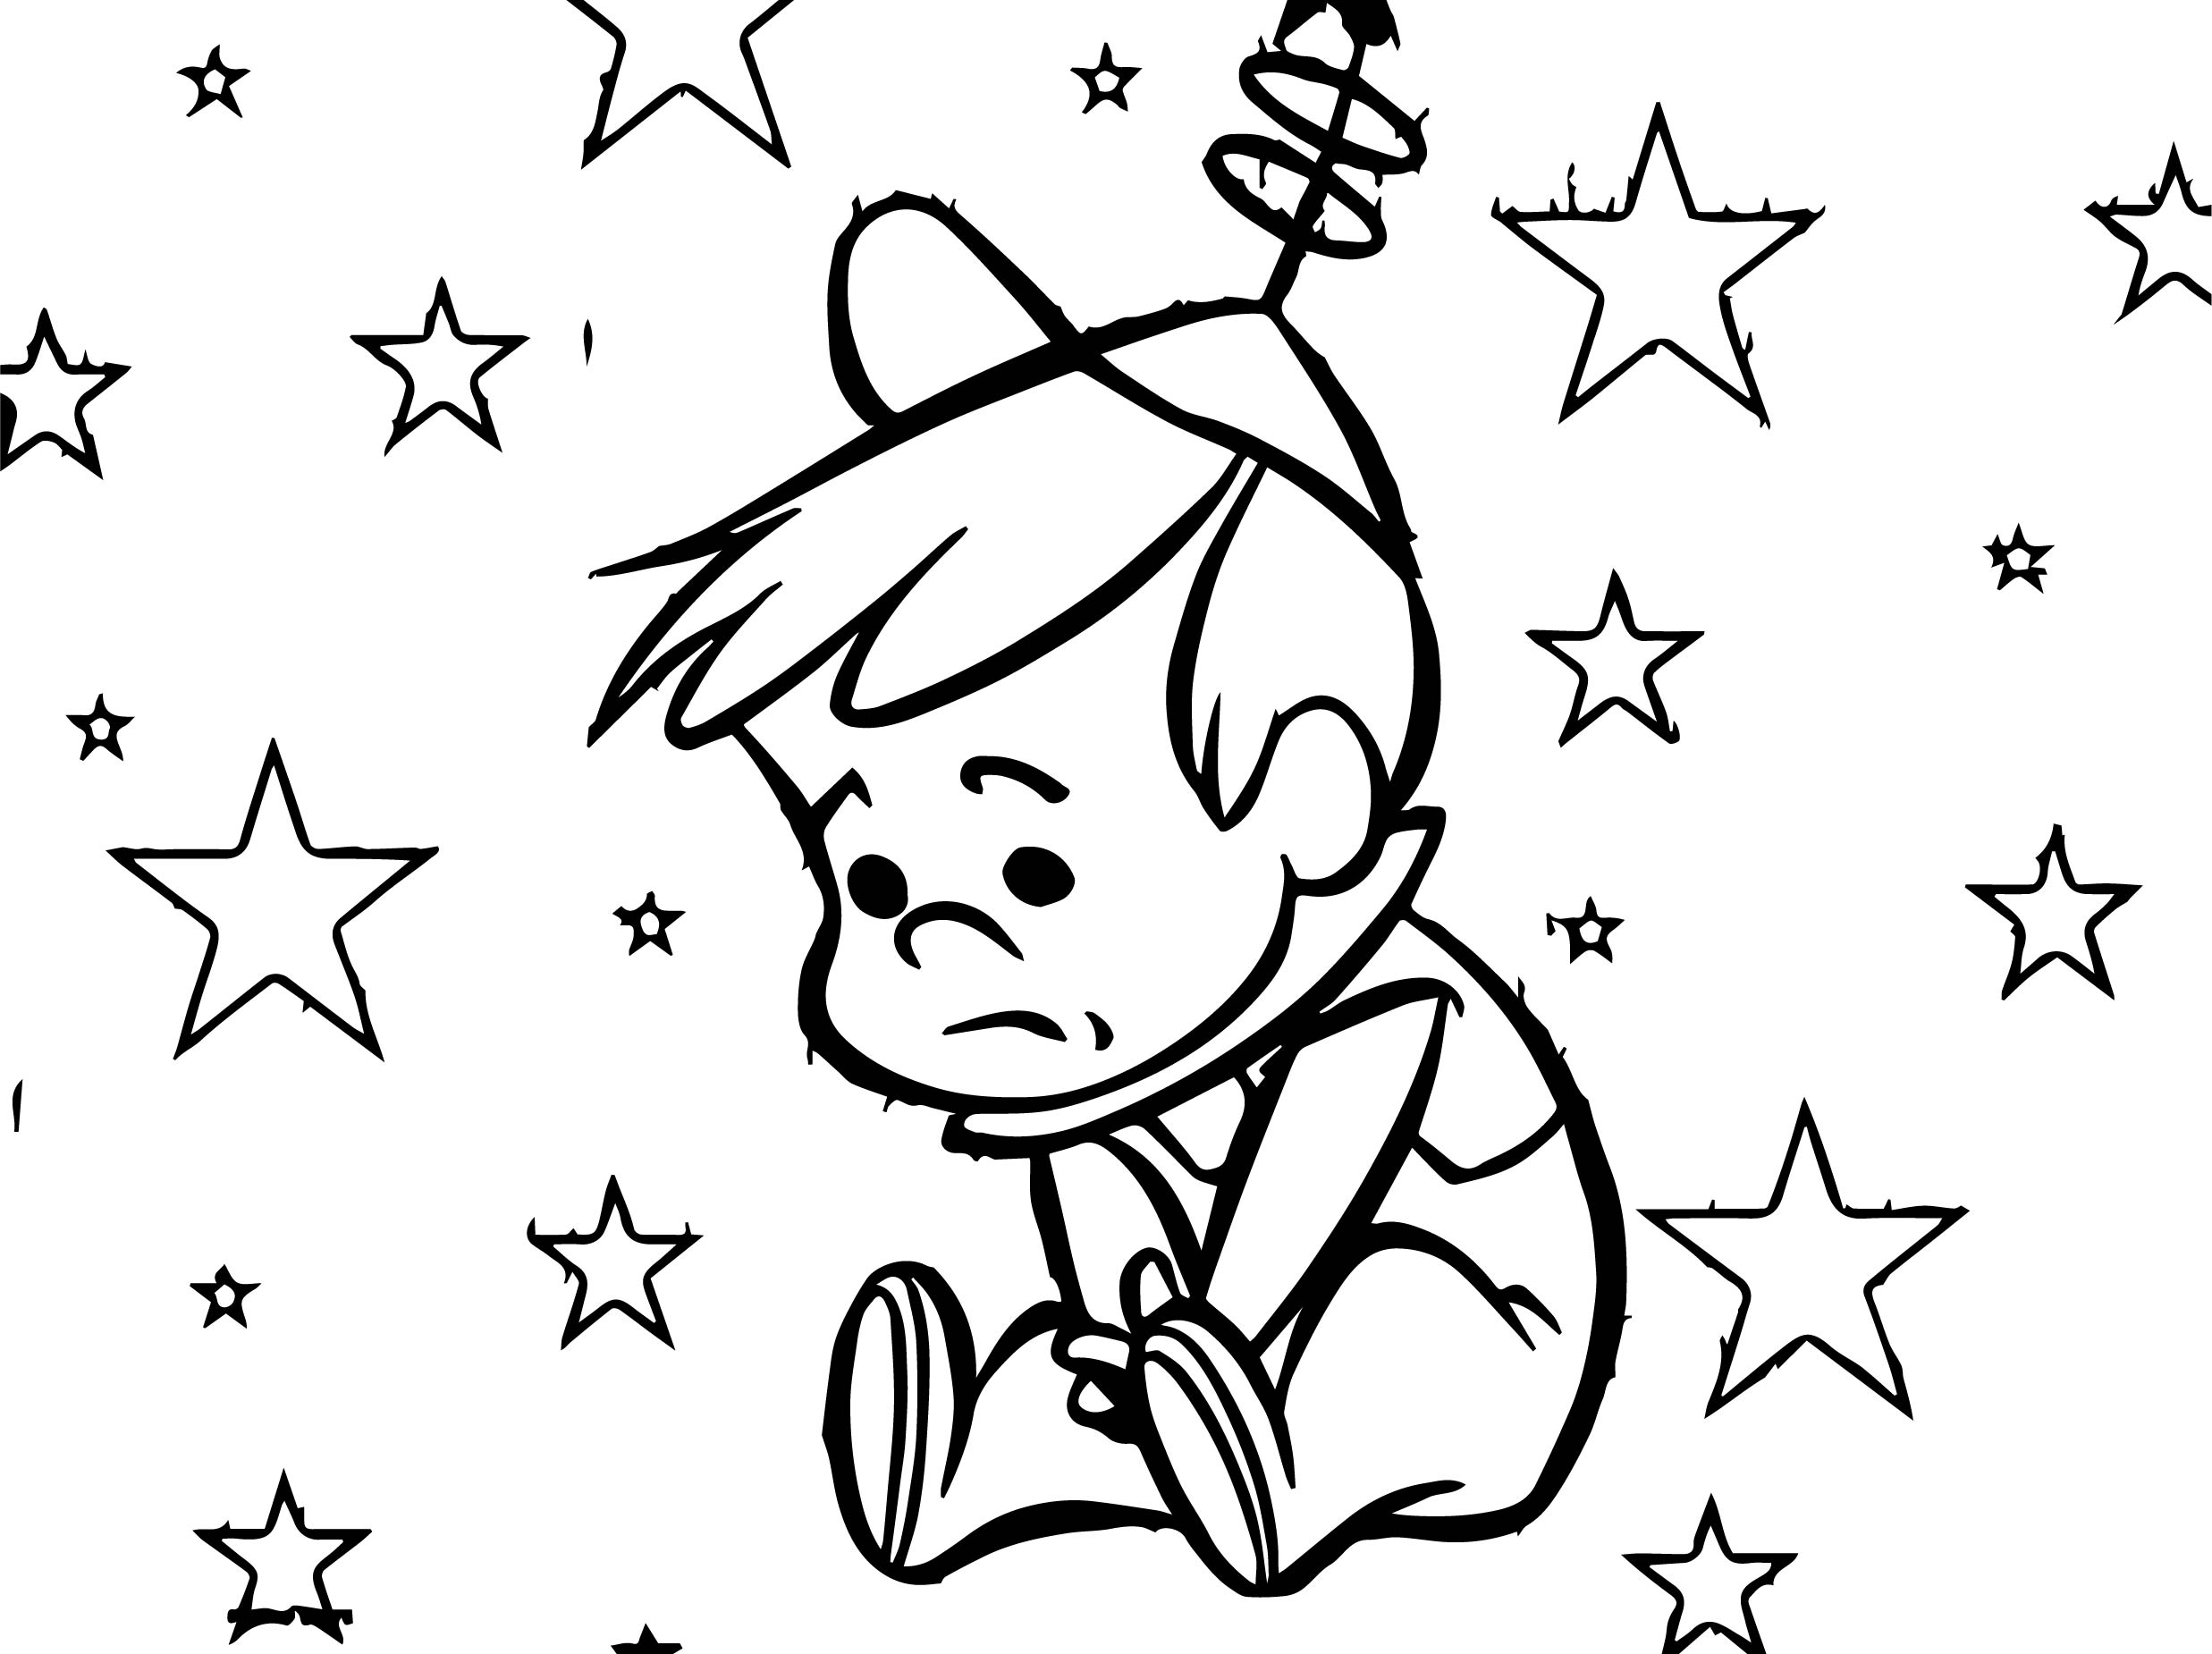 Star Elroy Jetson Sad Coloring Page